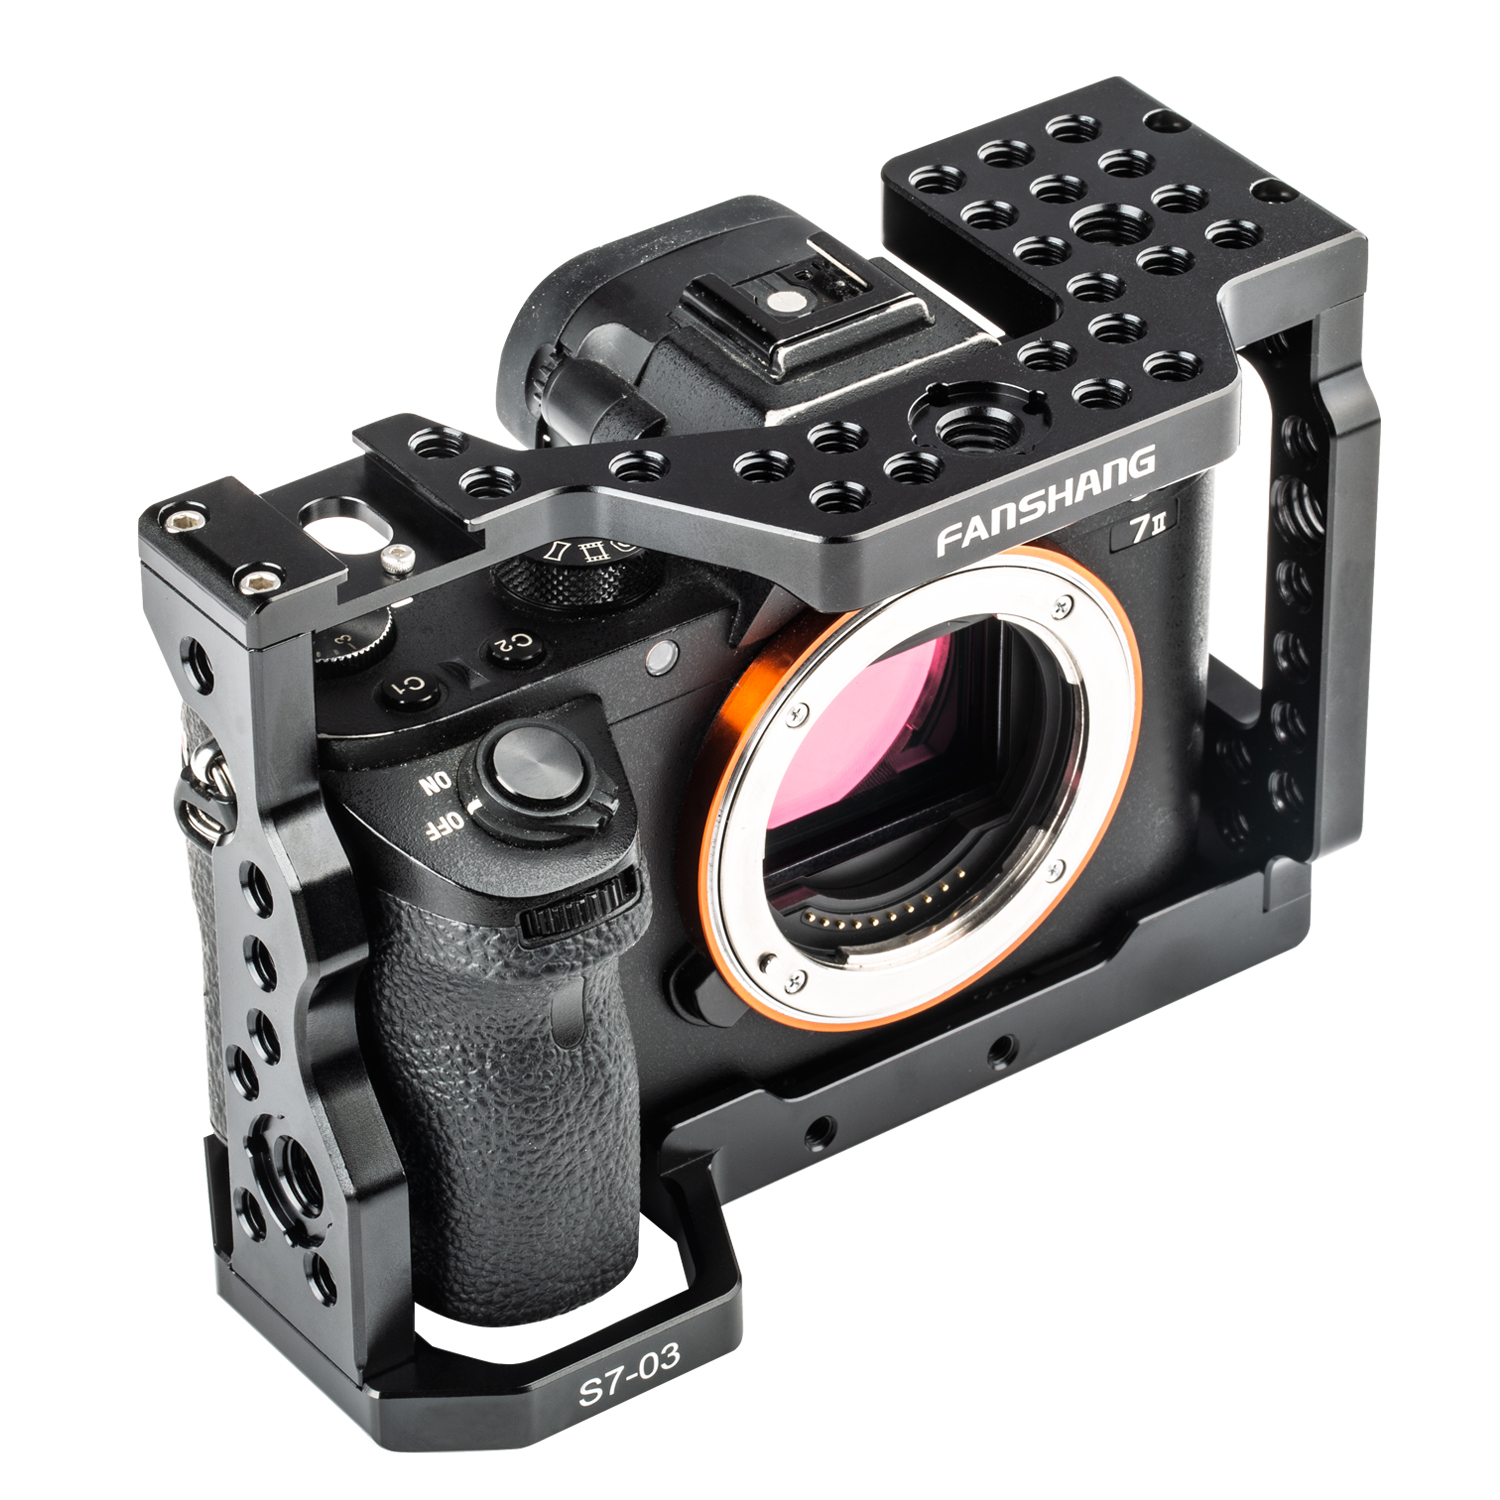 FANSHANG Aluminum Camera Cage Video Film Movie Rig Stabilizer For Sony A7RIII/A7III/A7II DSLR W/ Cold Shoe & ARRI Locating Hole